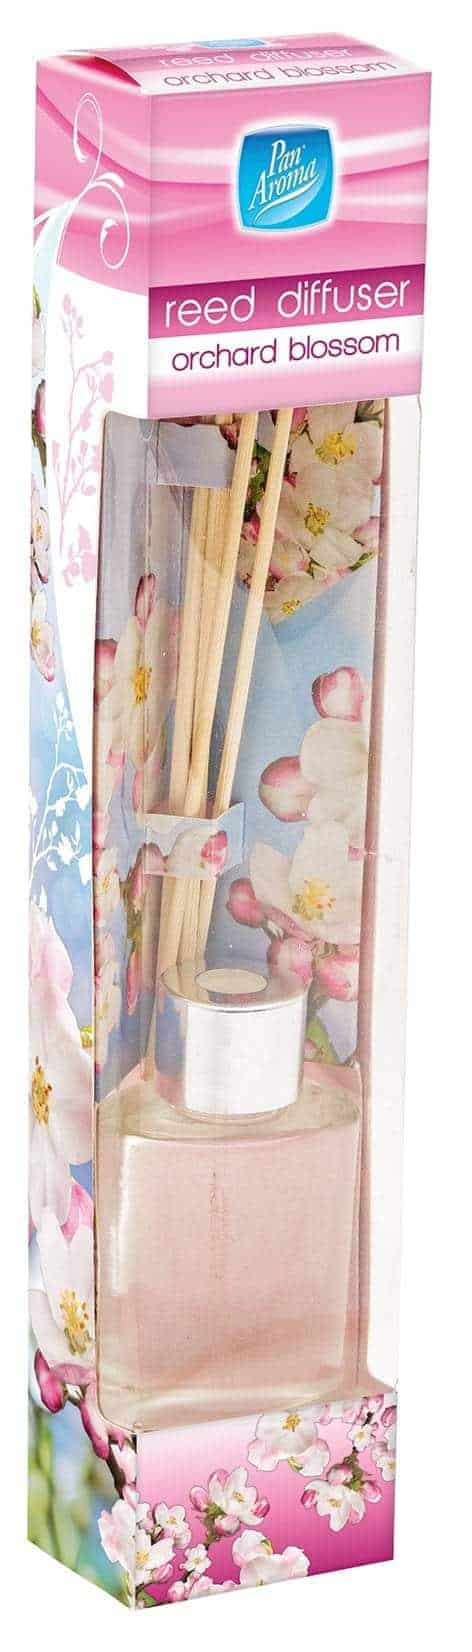 Pan Aroma 30Ml Reed Diffuser - Orchard Blossom